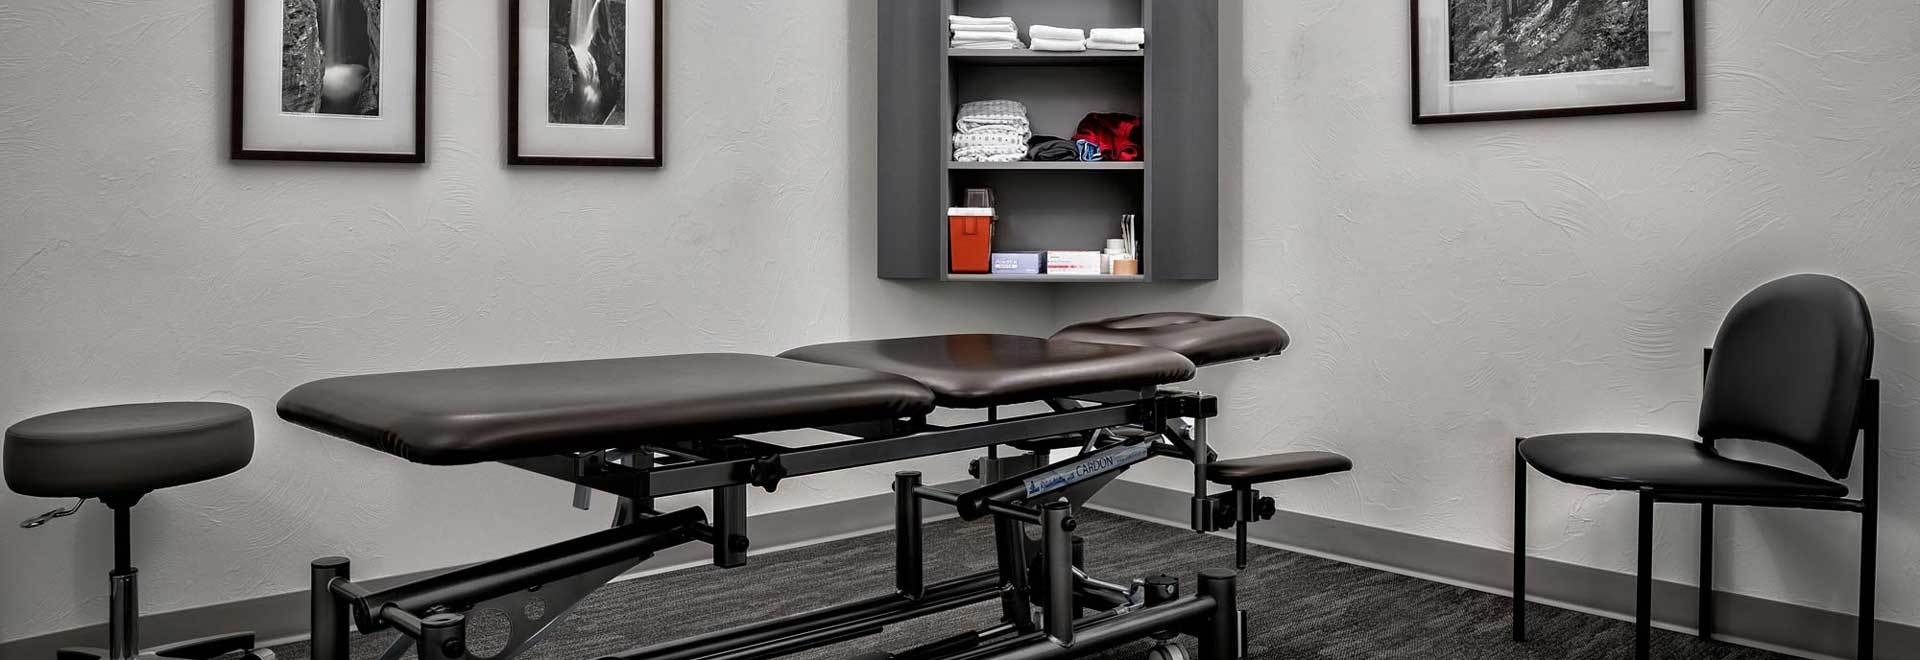 Excel Physical Therapy | Specialized Orthopedic and Sports ...